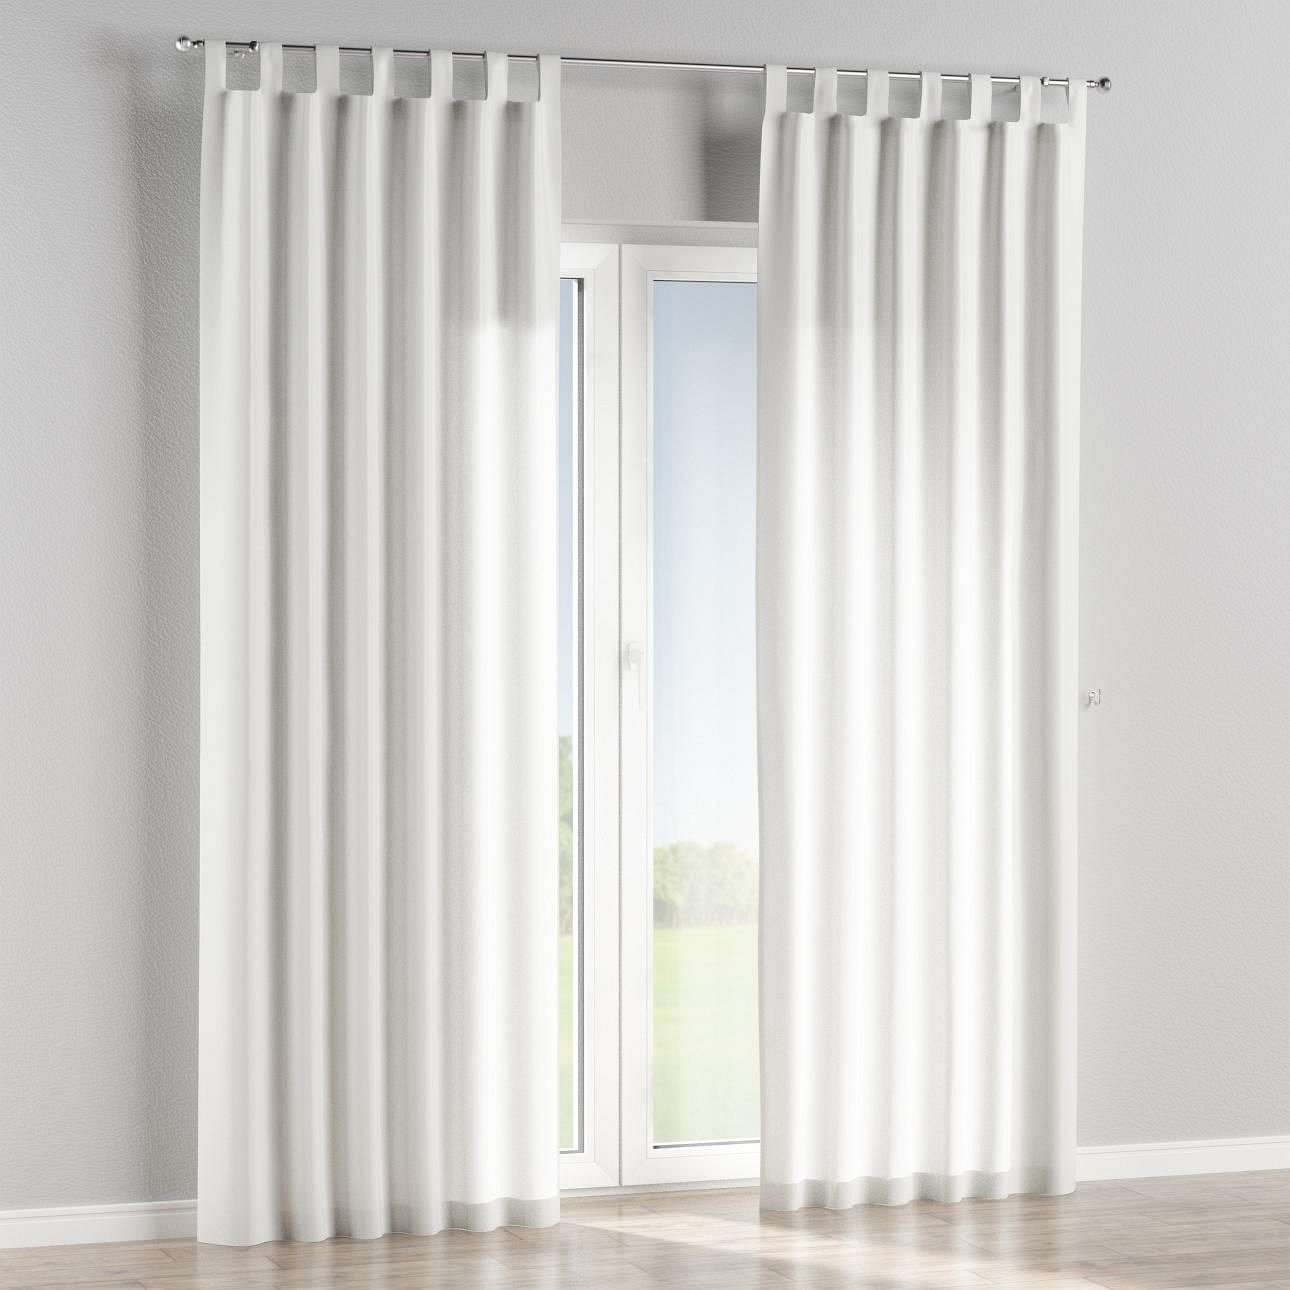 Tab top curtains in collection SALE, fabric: 142-08